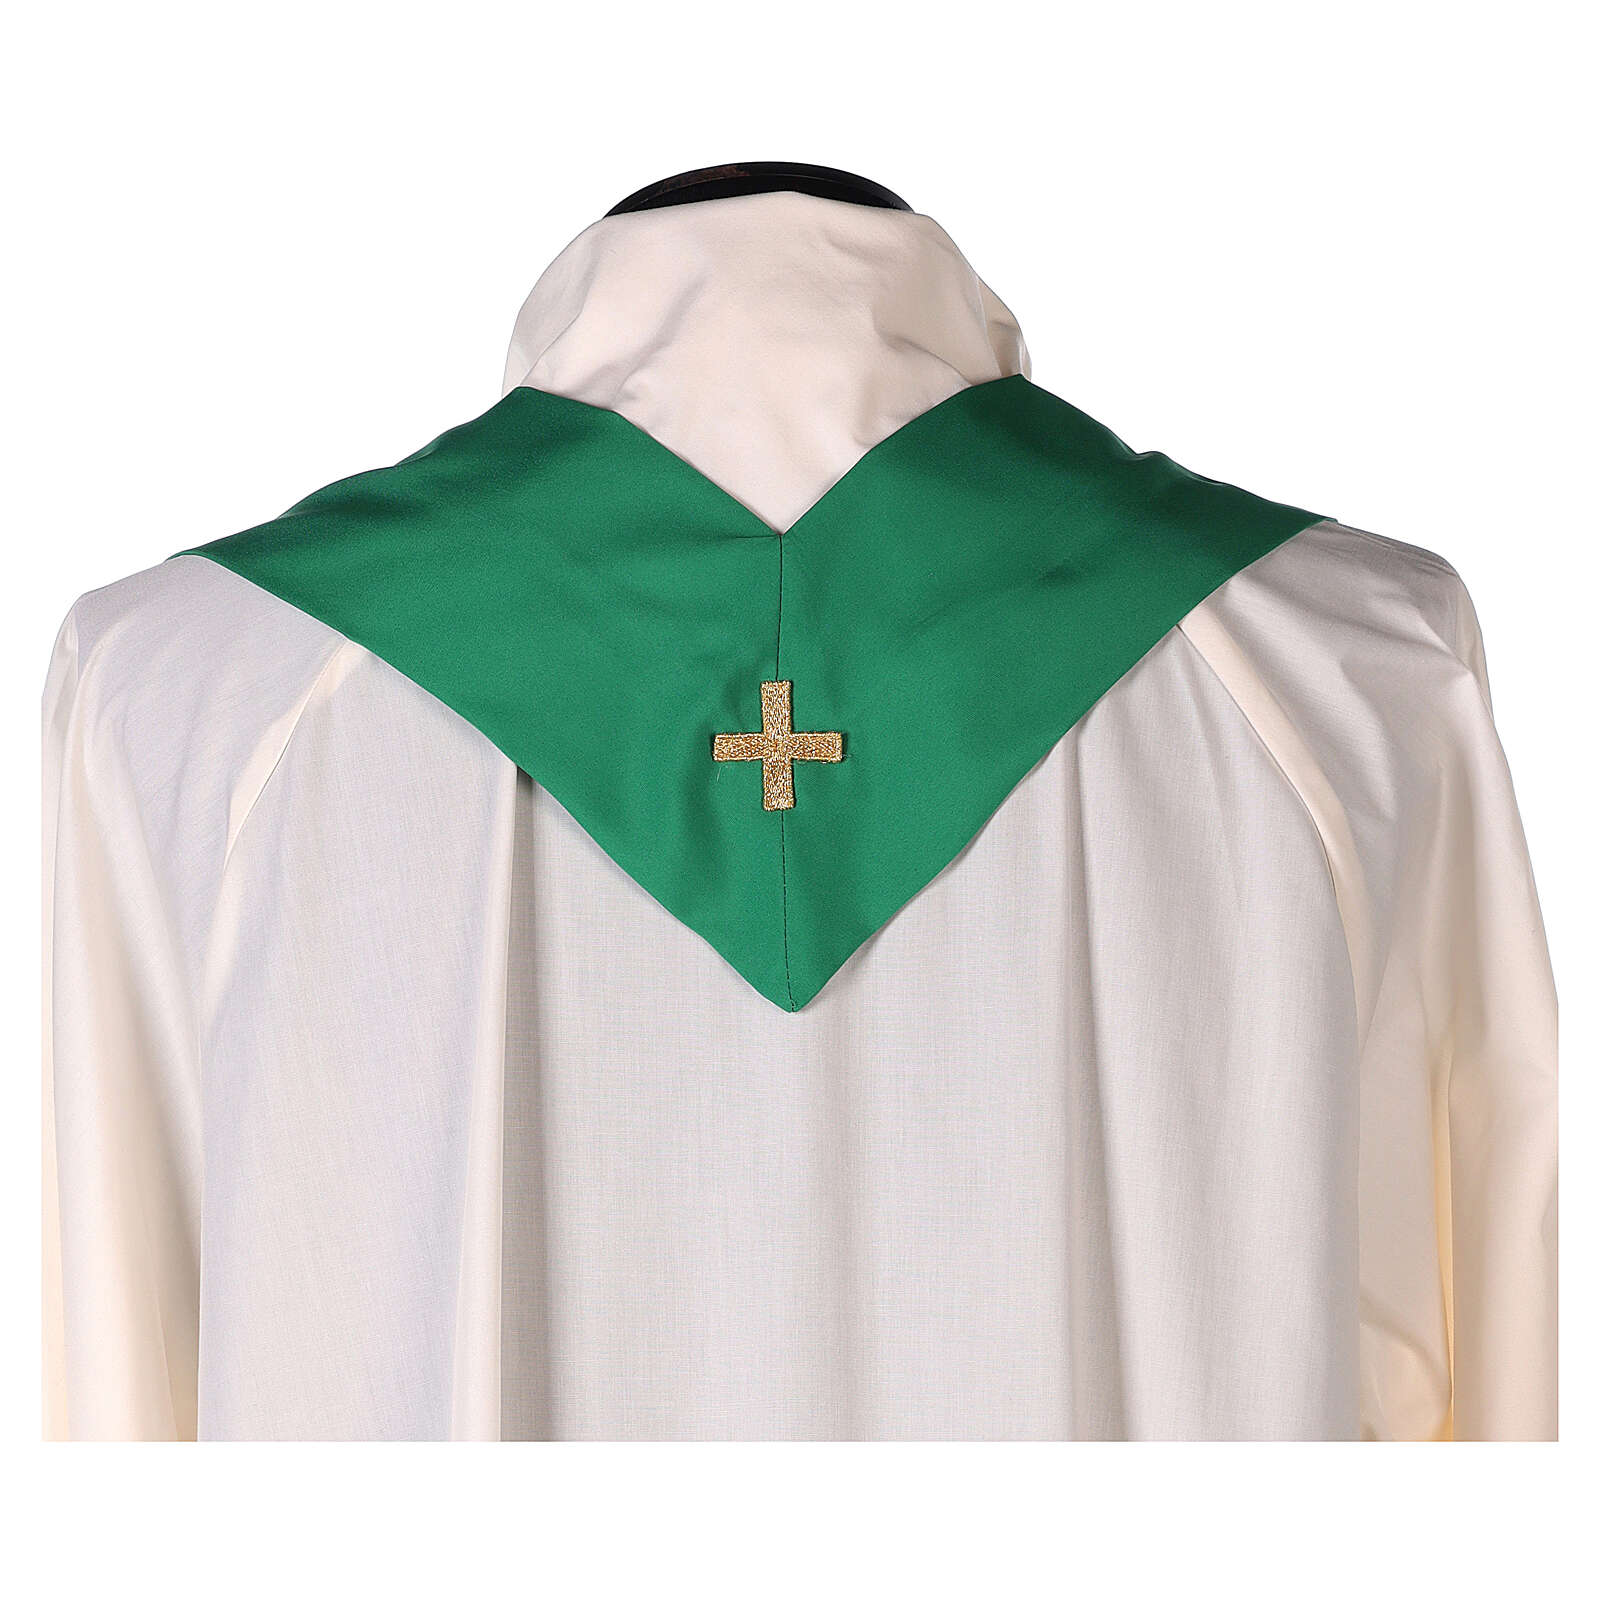 Chasuble 100% polyester 4 colors IHS cross rays 4